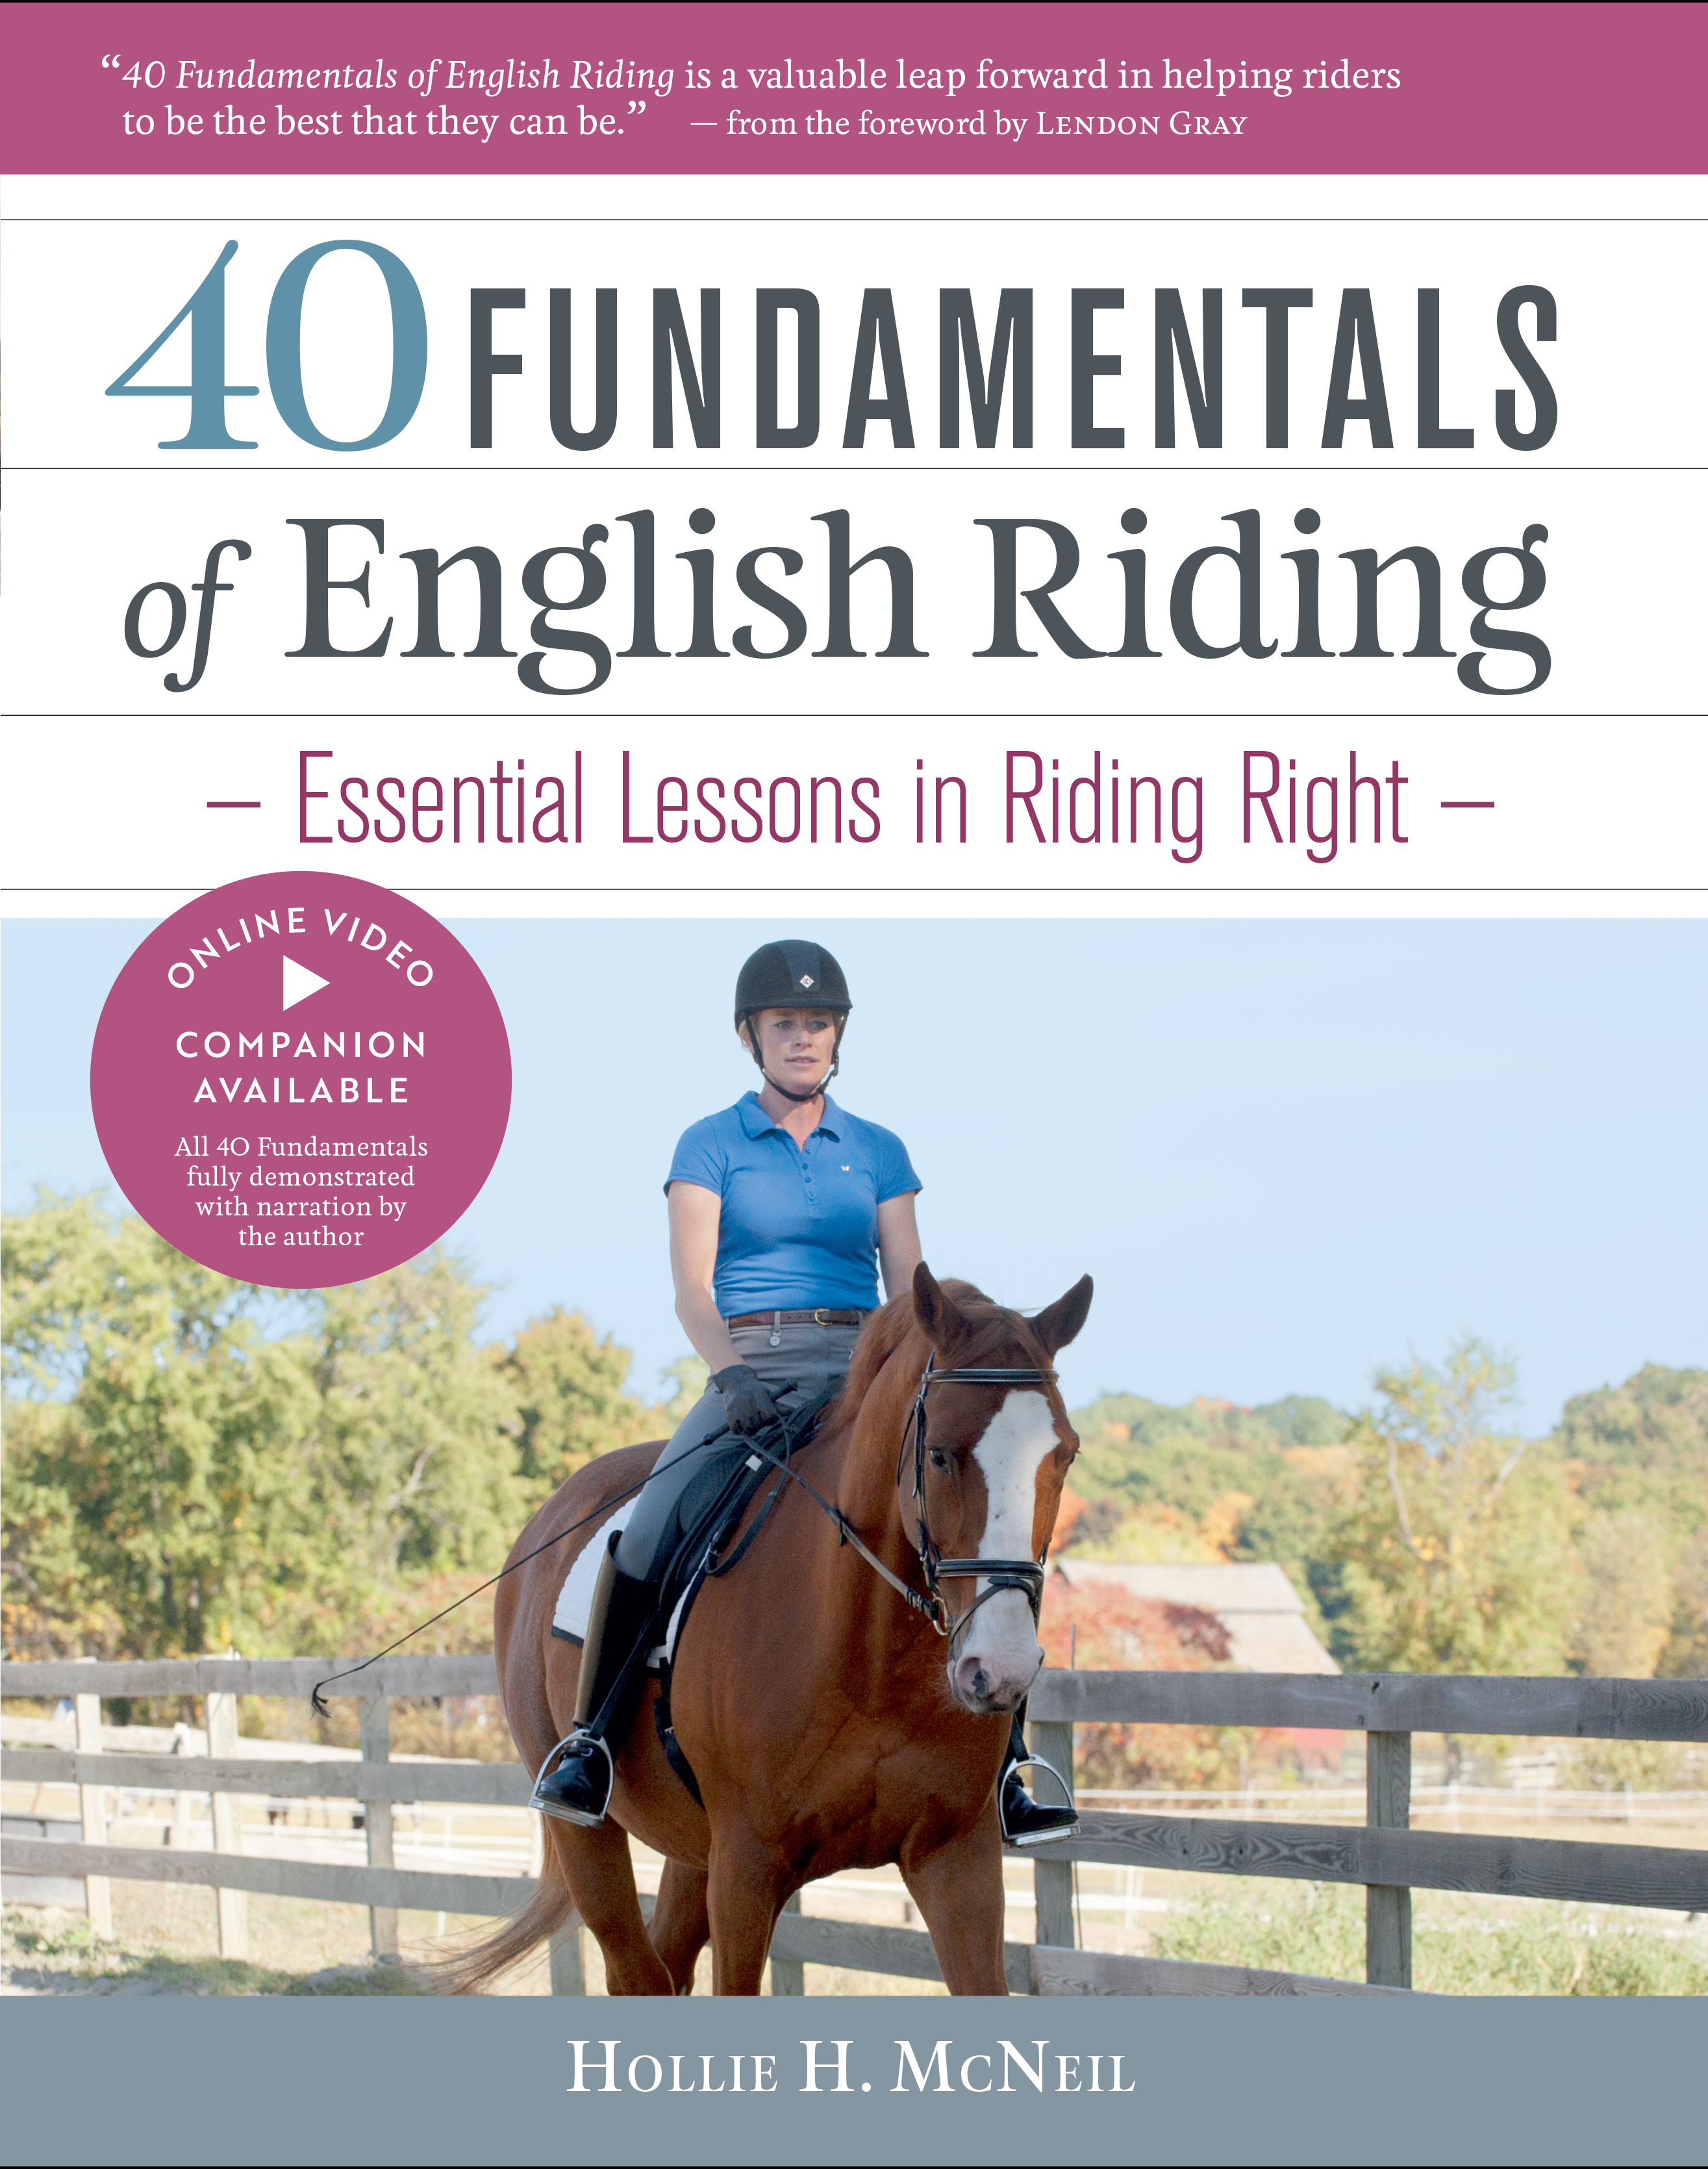 40 Fundamentals of English Riding Essential Lessons in Riding Right (Book and DVD) - Hollie H. McNeil